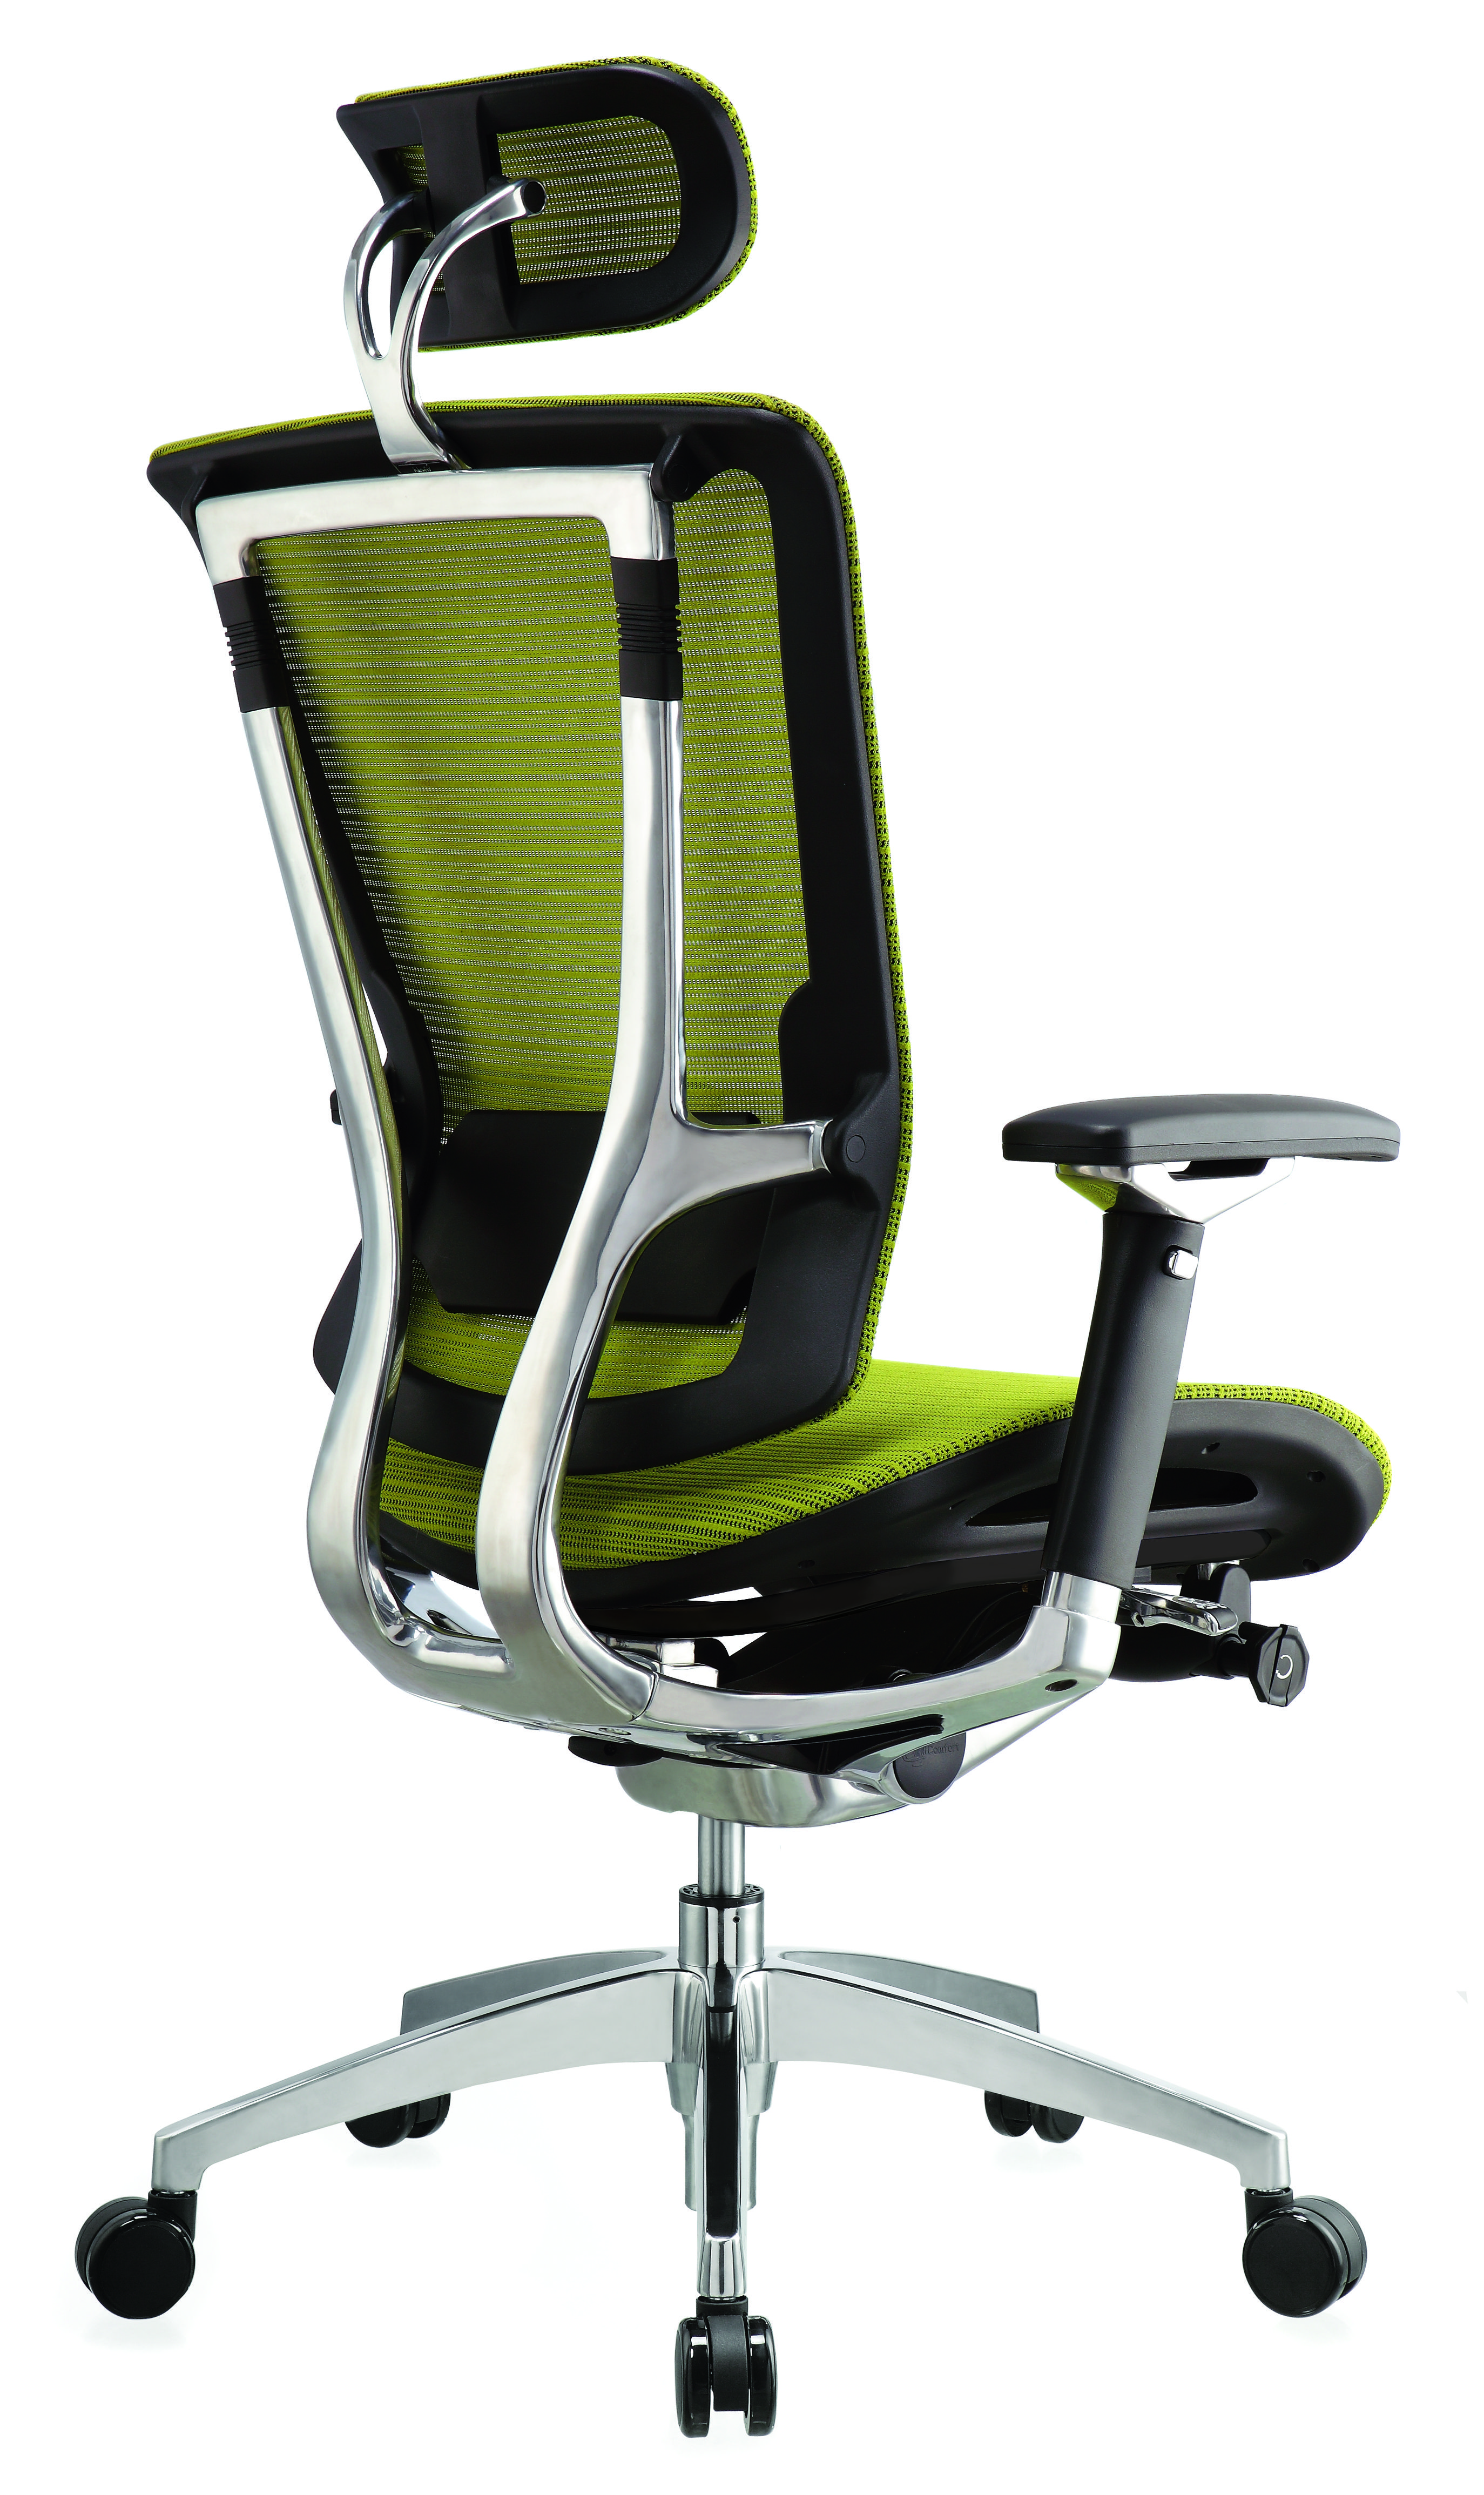 Exquisite Desk Chairs Uk Office Design With Headrest